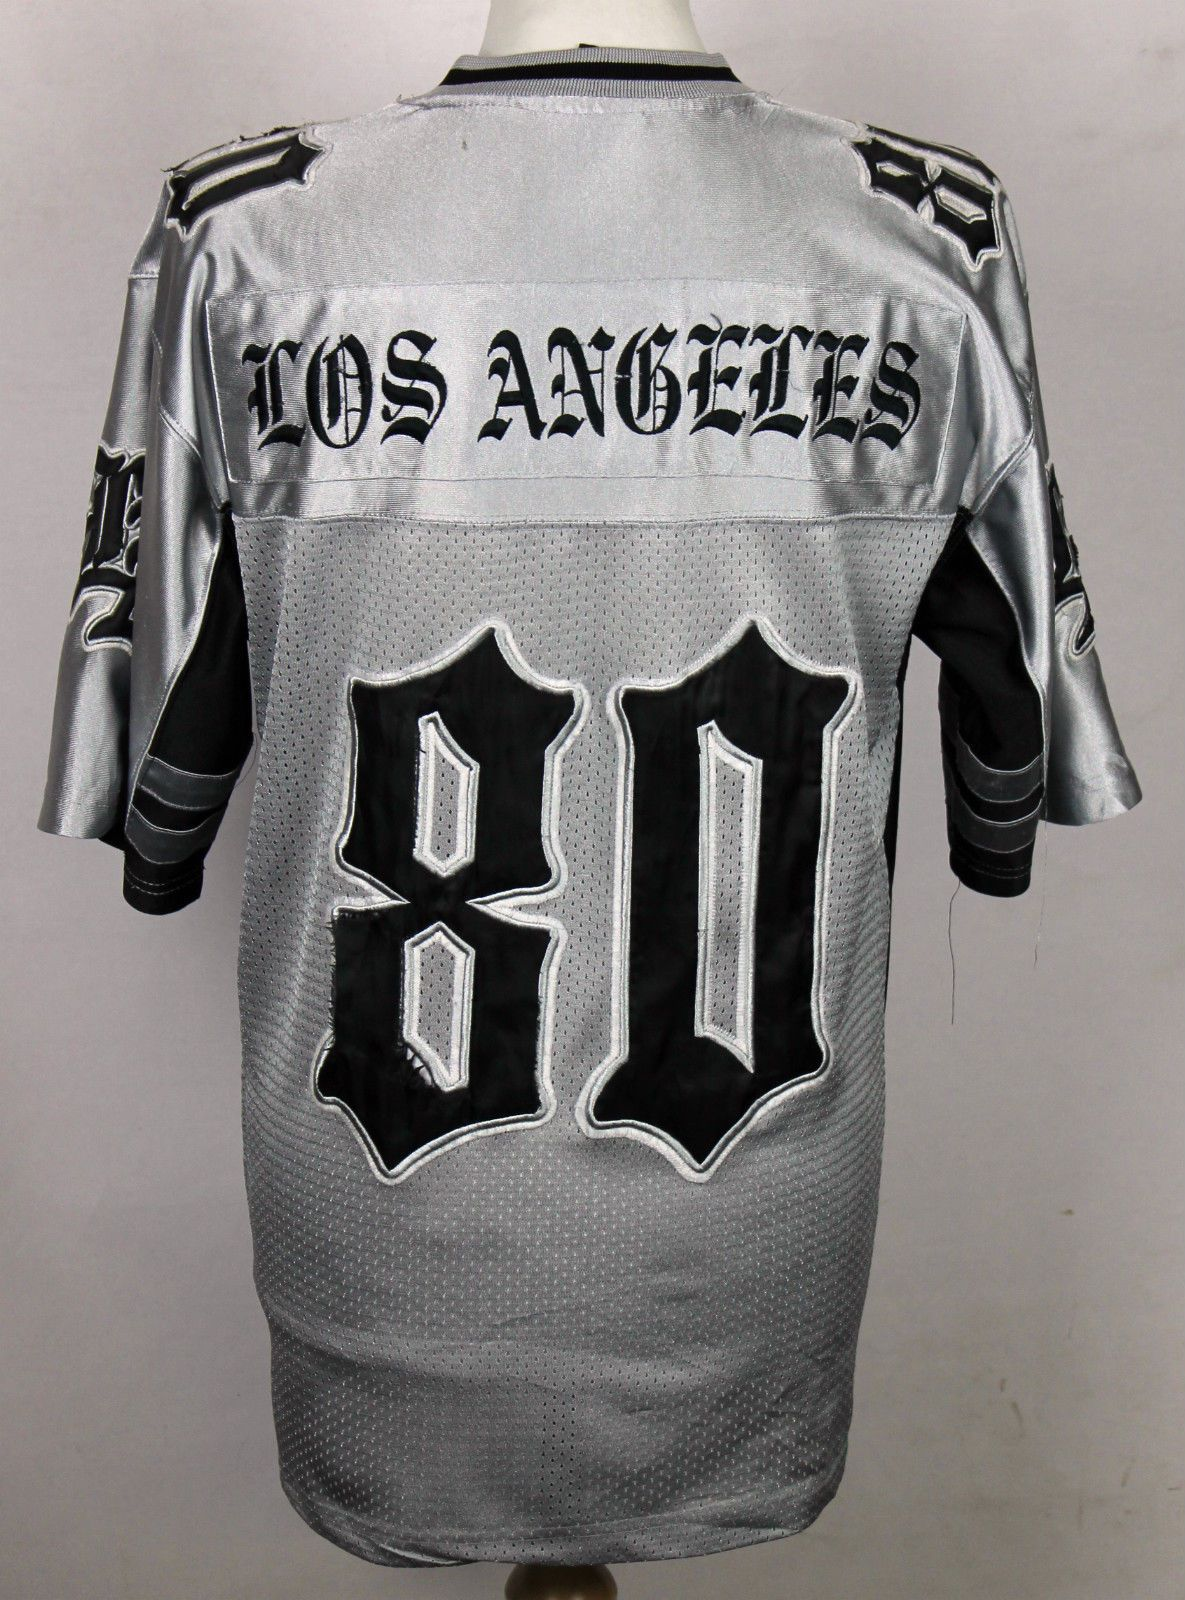 Los Angeles 80 Vintage American Football Jersey Shirt Mens Small Victorious Ropa Los Angeles